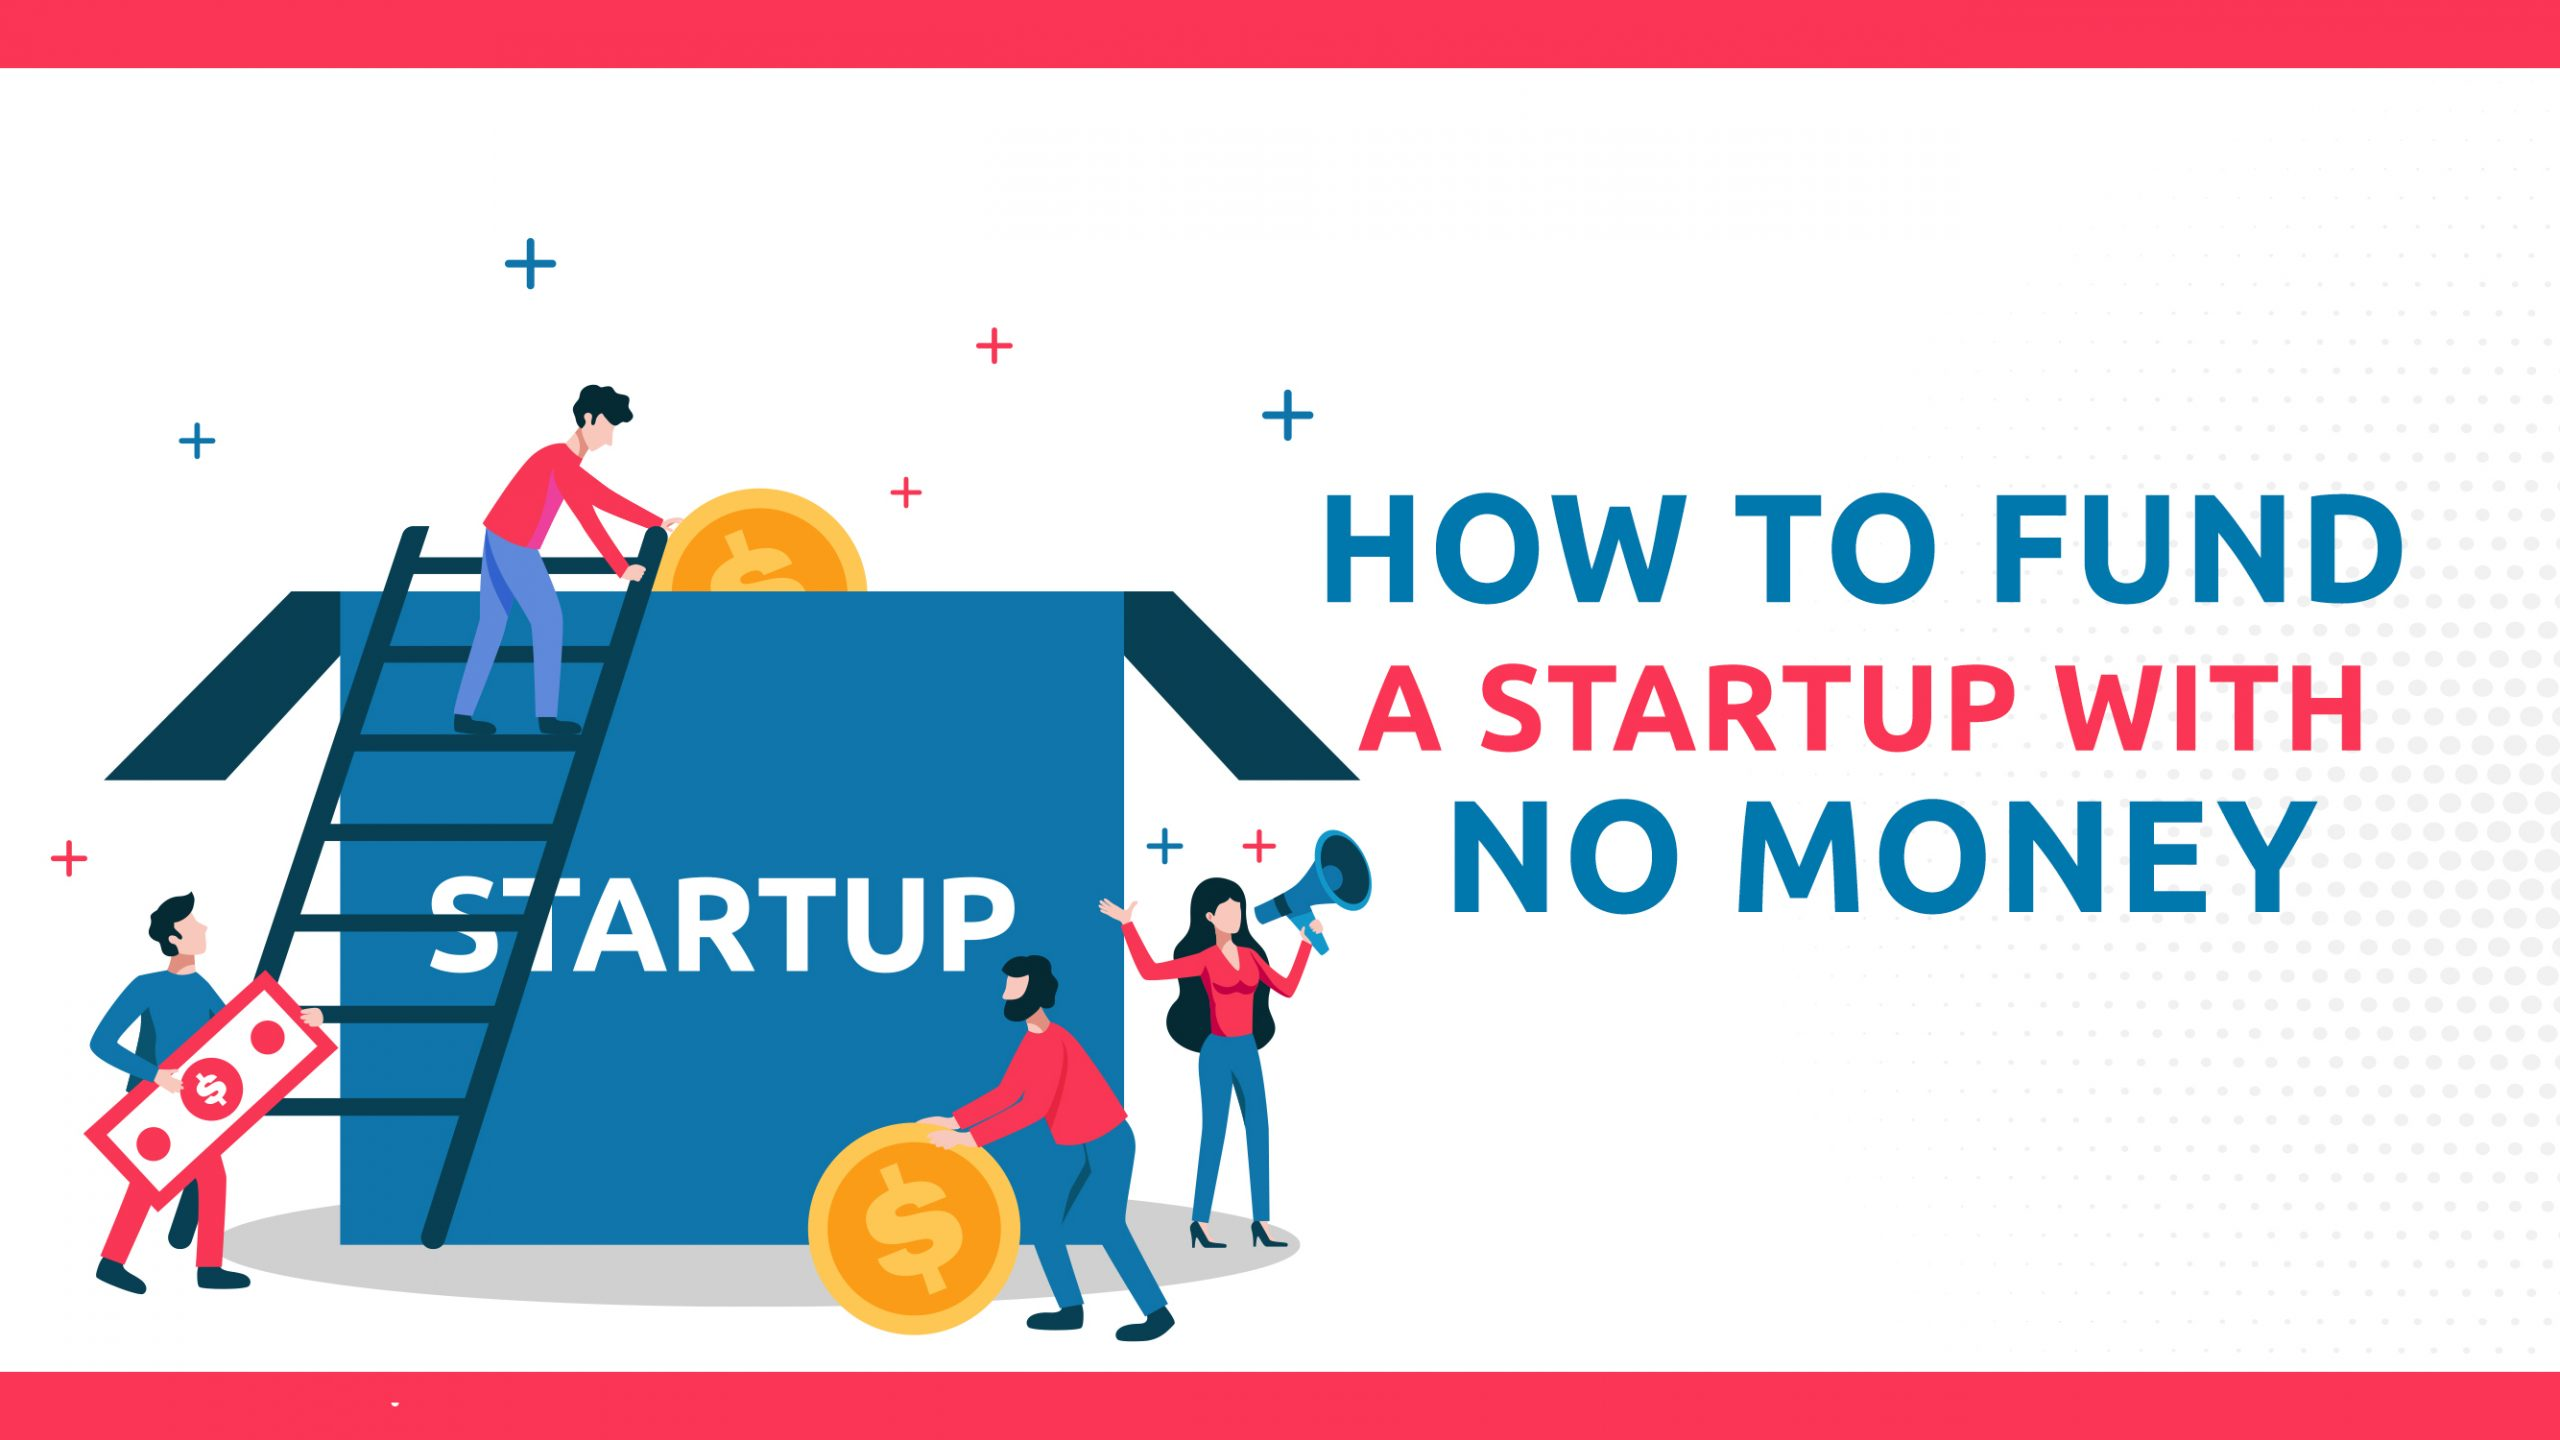 How To Fund A Startup With No Money